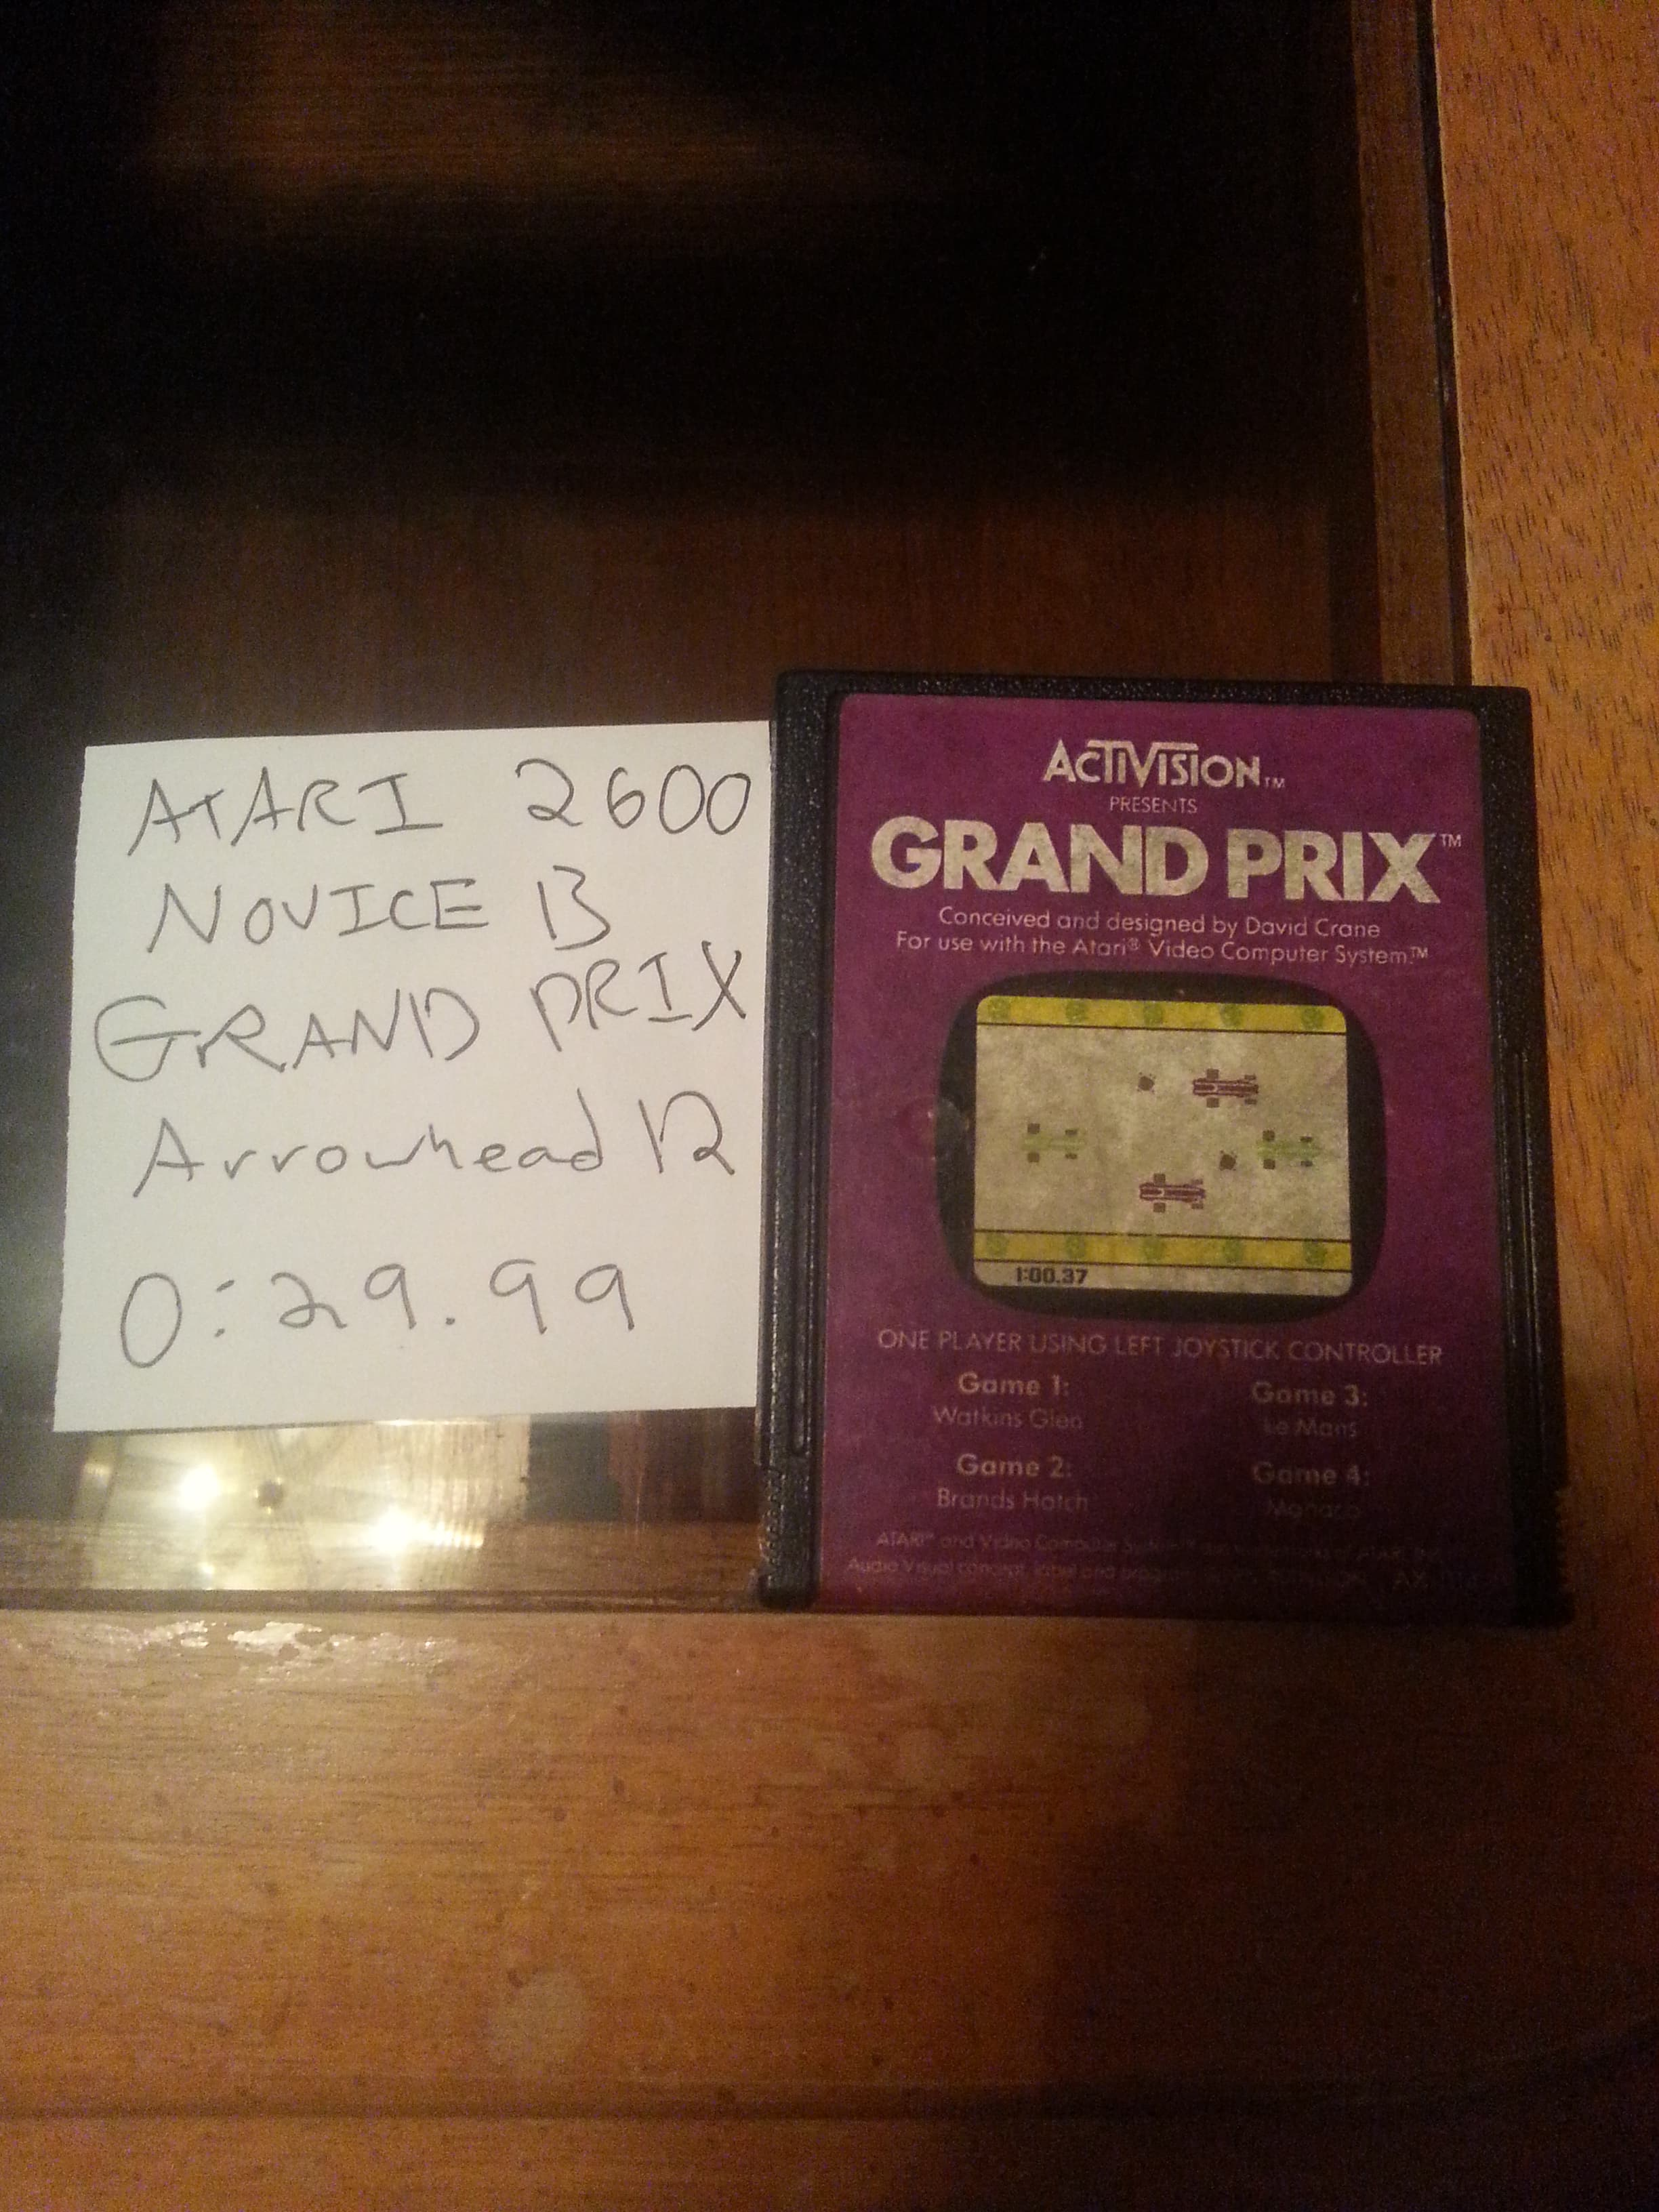 Arrowhead12: Grand Prix: Game 1 (Atari 2600 Novice/B) 0:00:29.99 points on 2018-09-29 00:40:32